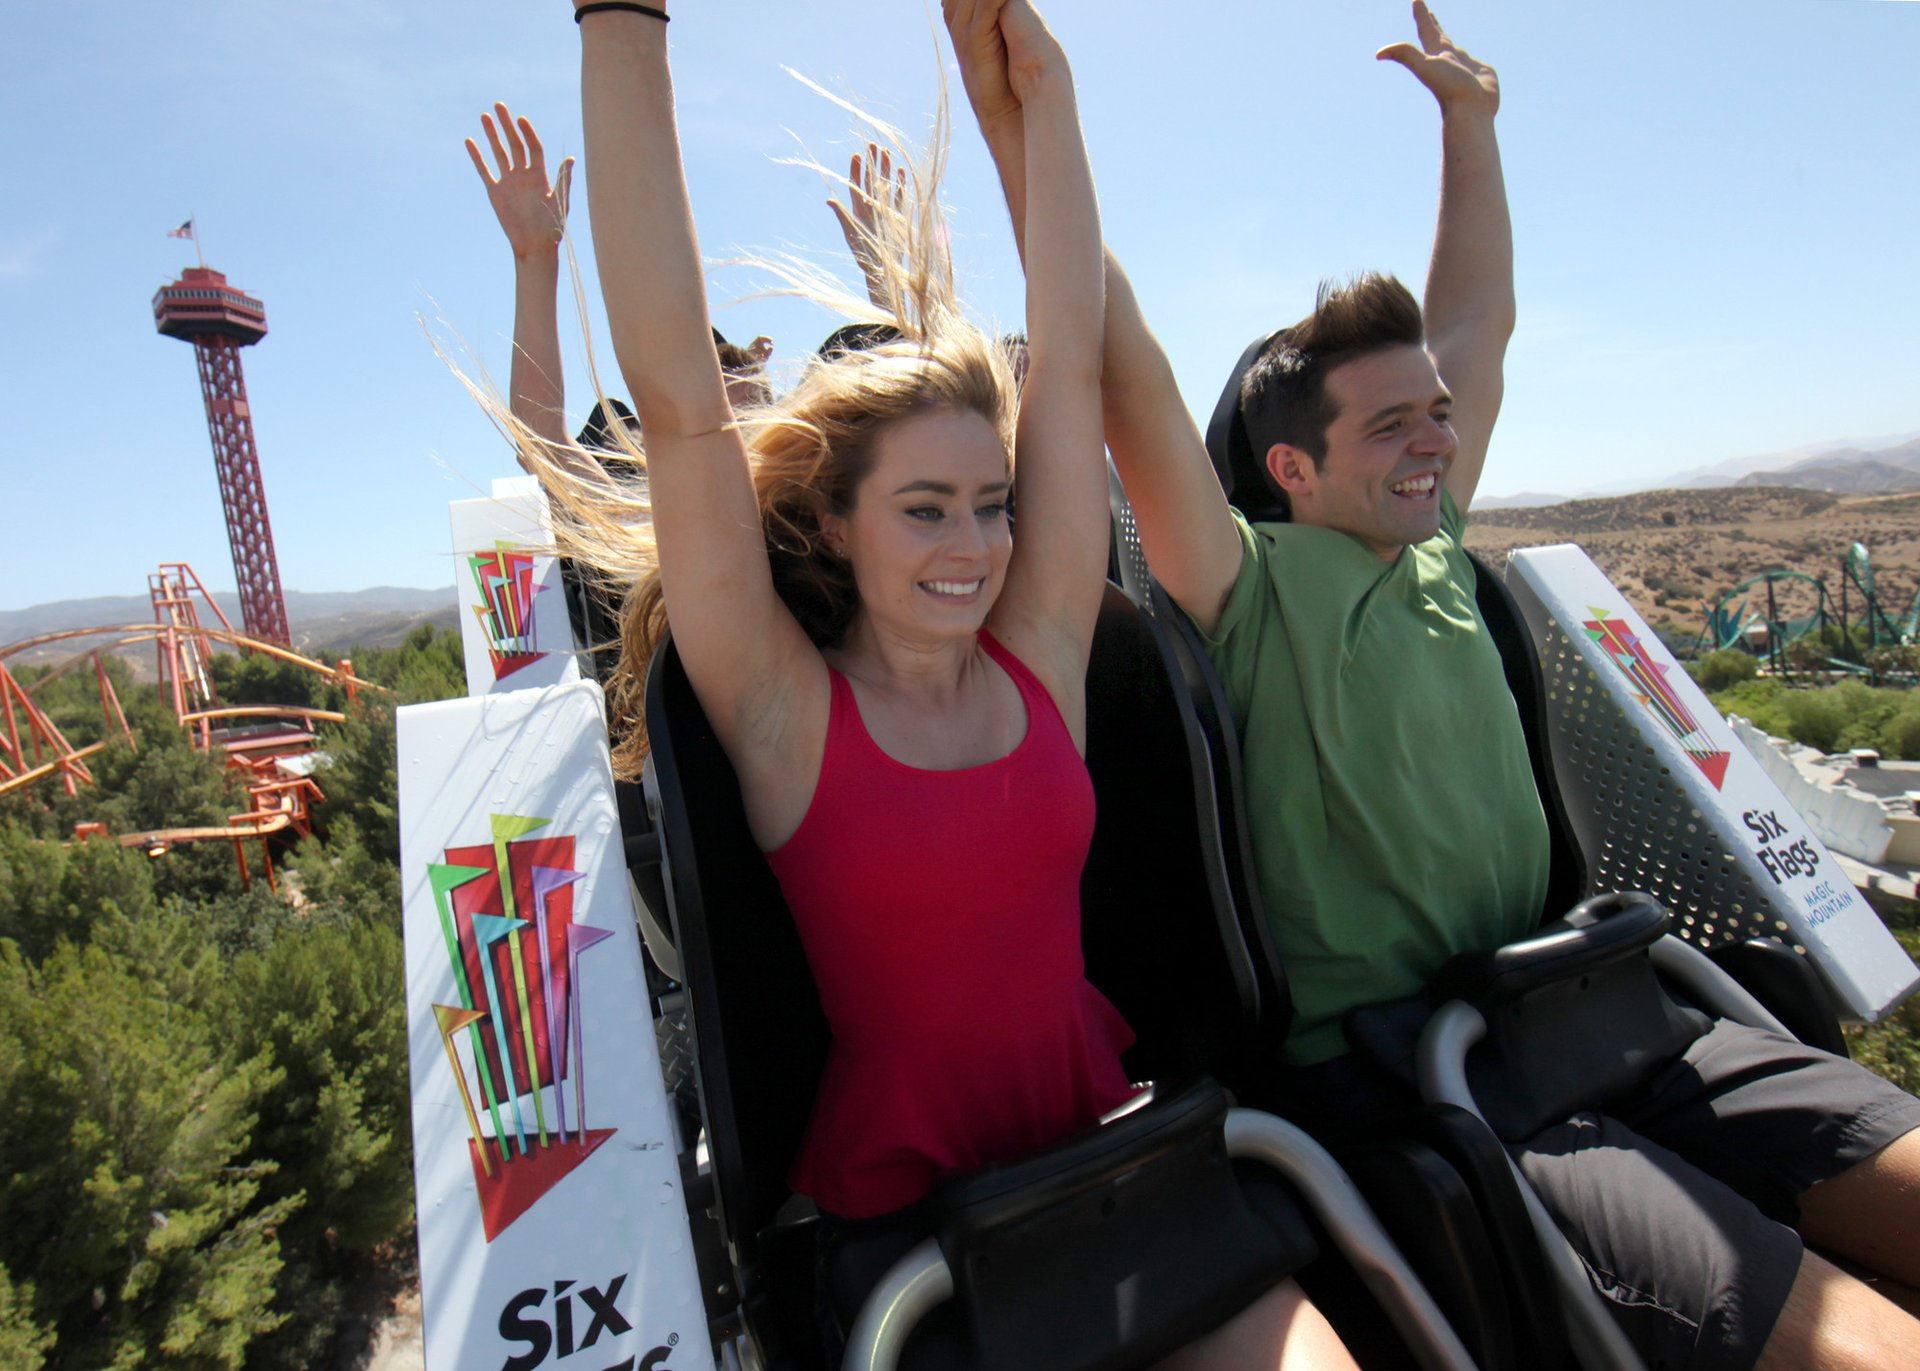 People on a roller coaster with their hands in the air